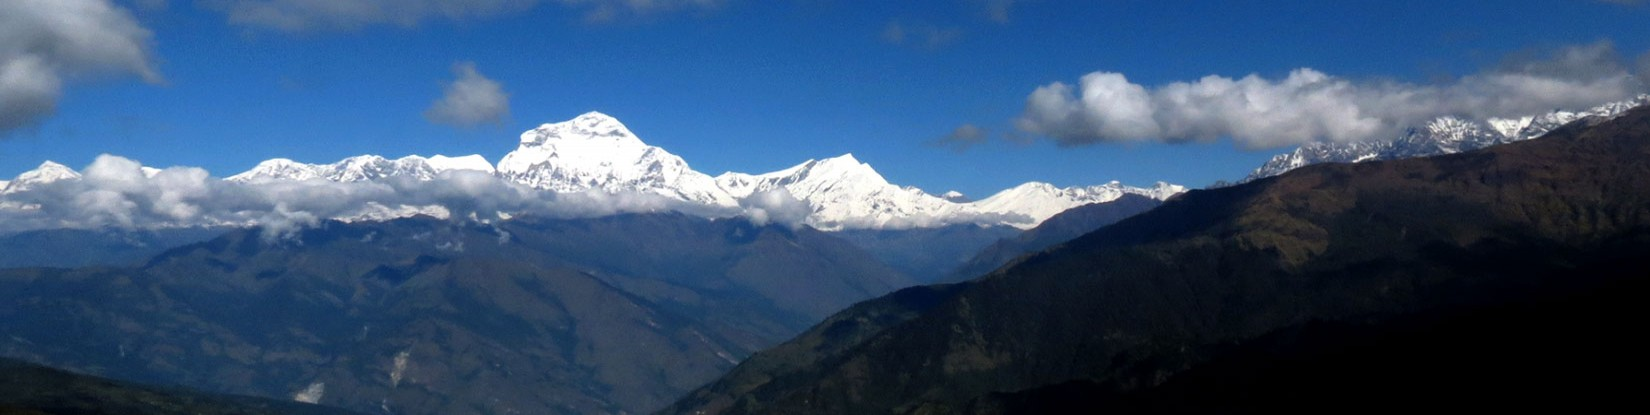 Dhaulagiri Range seen from Poon Hill (3120m)